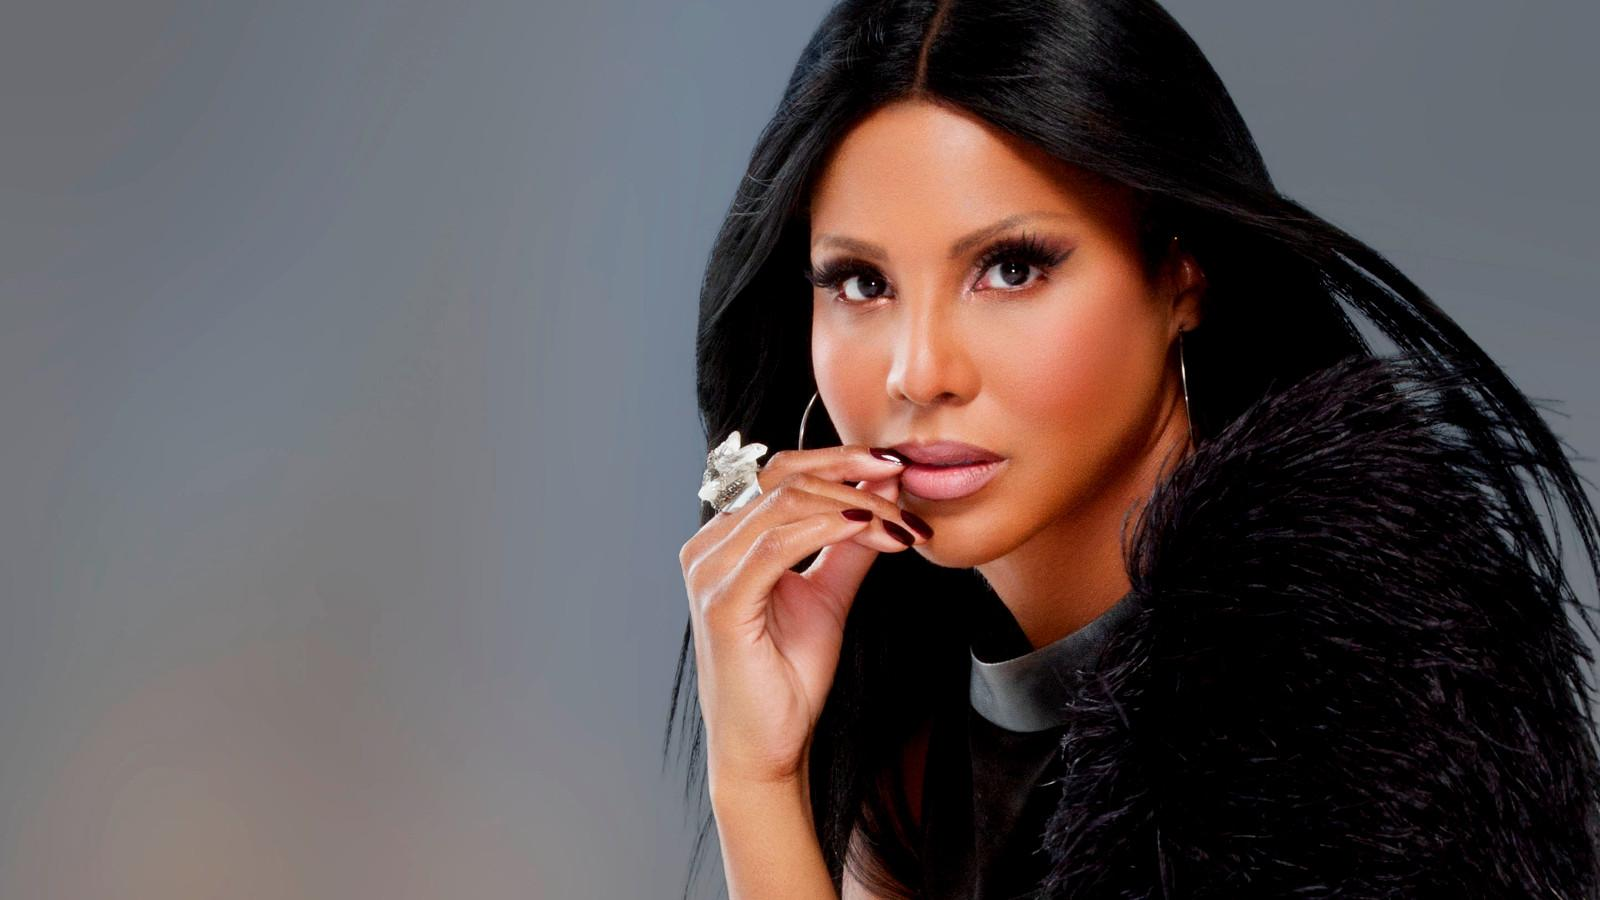 Toni Braxton Drops New Music Today - Check Out Some Samples And Watch The Video